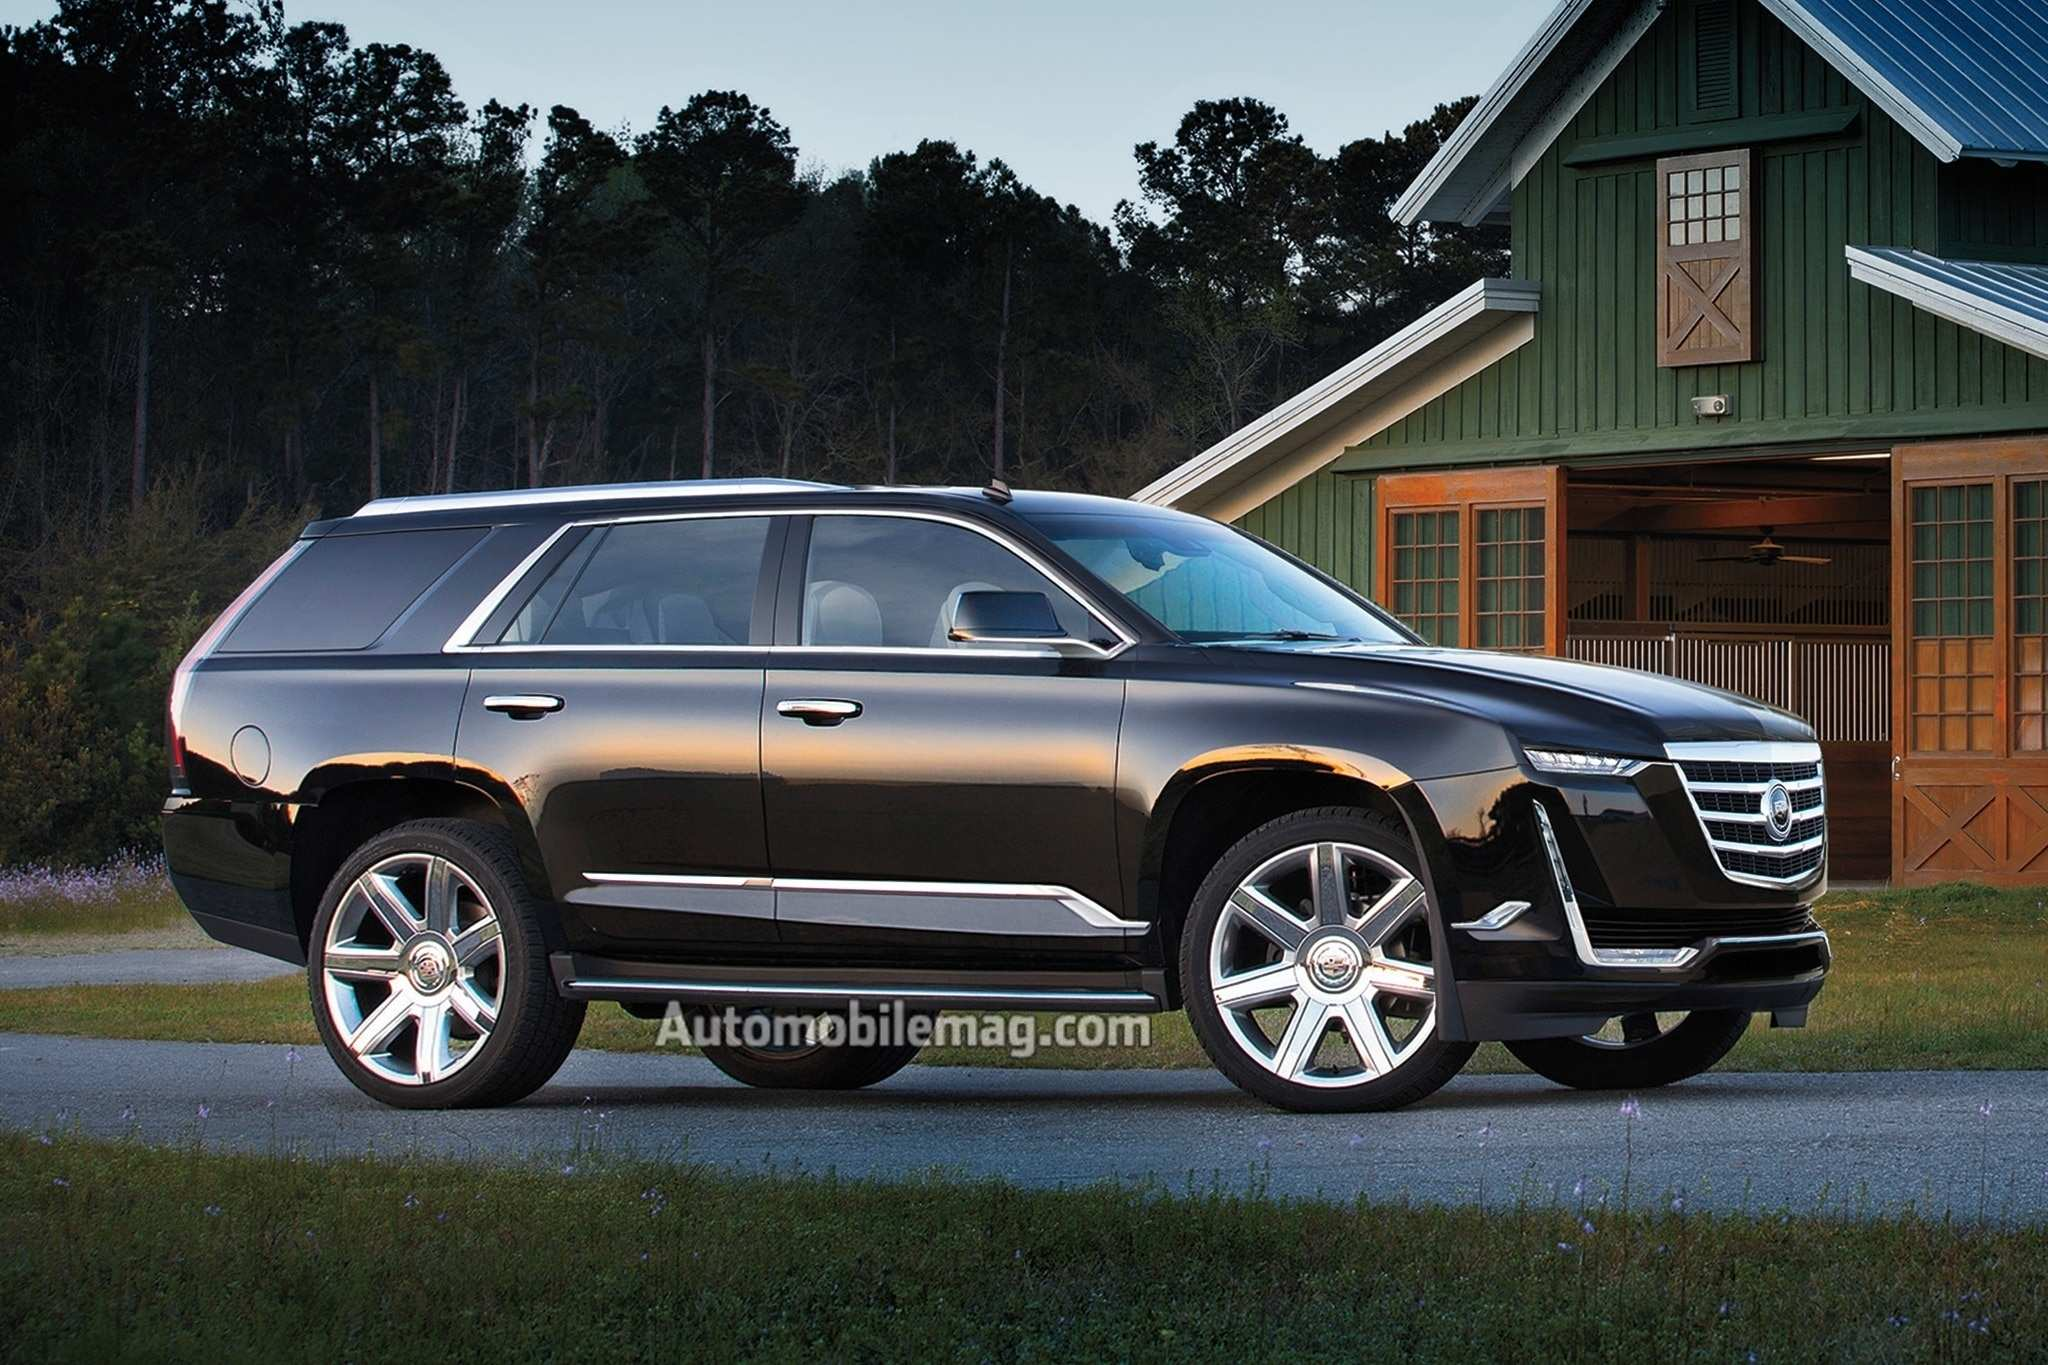 36 All New Gmc Yukon 2020 Release Date History